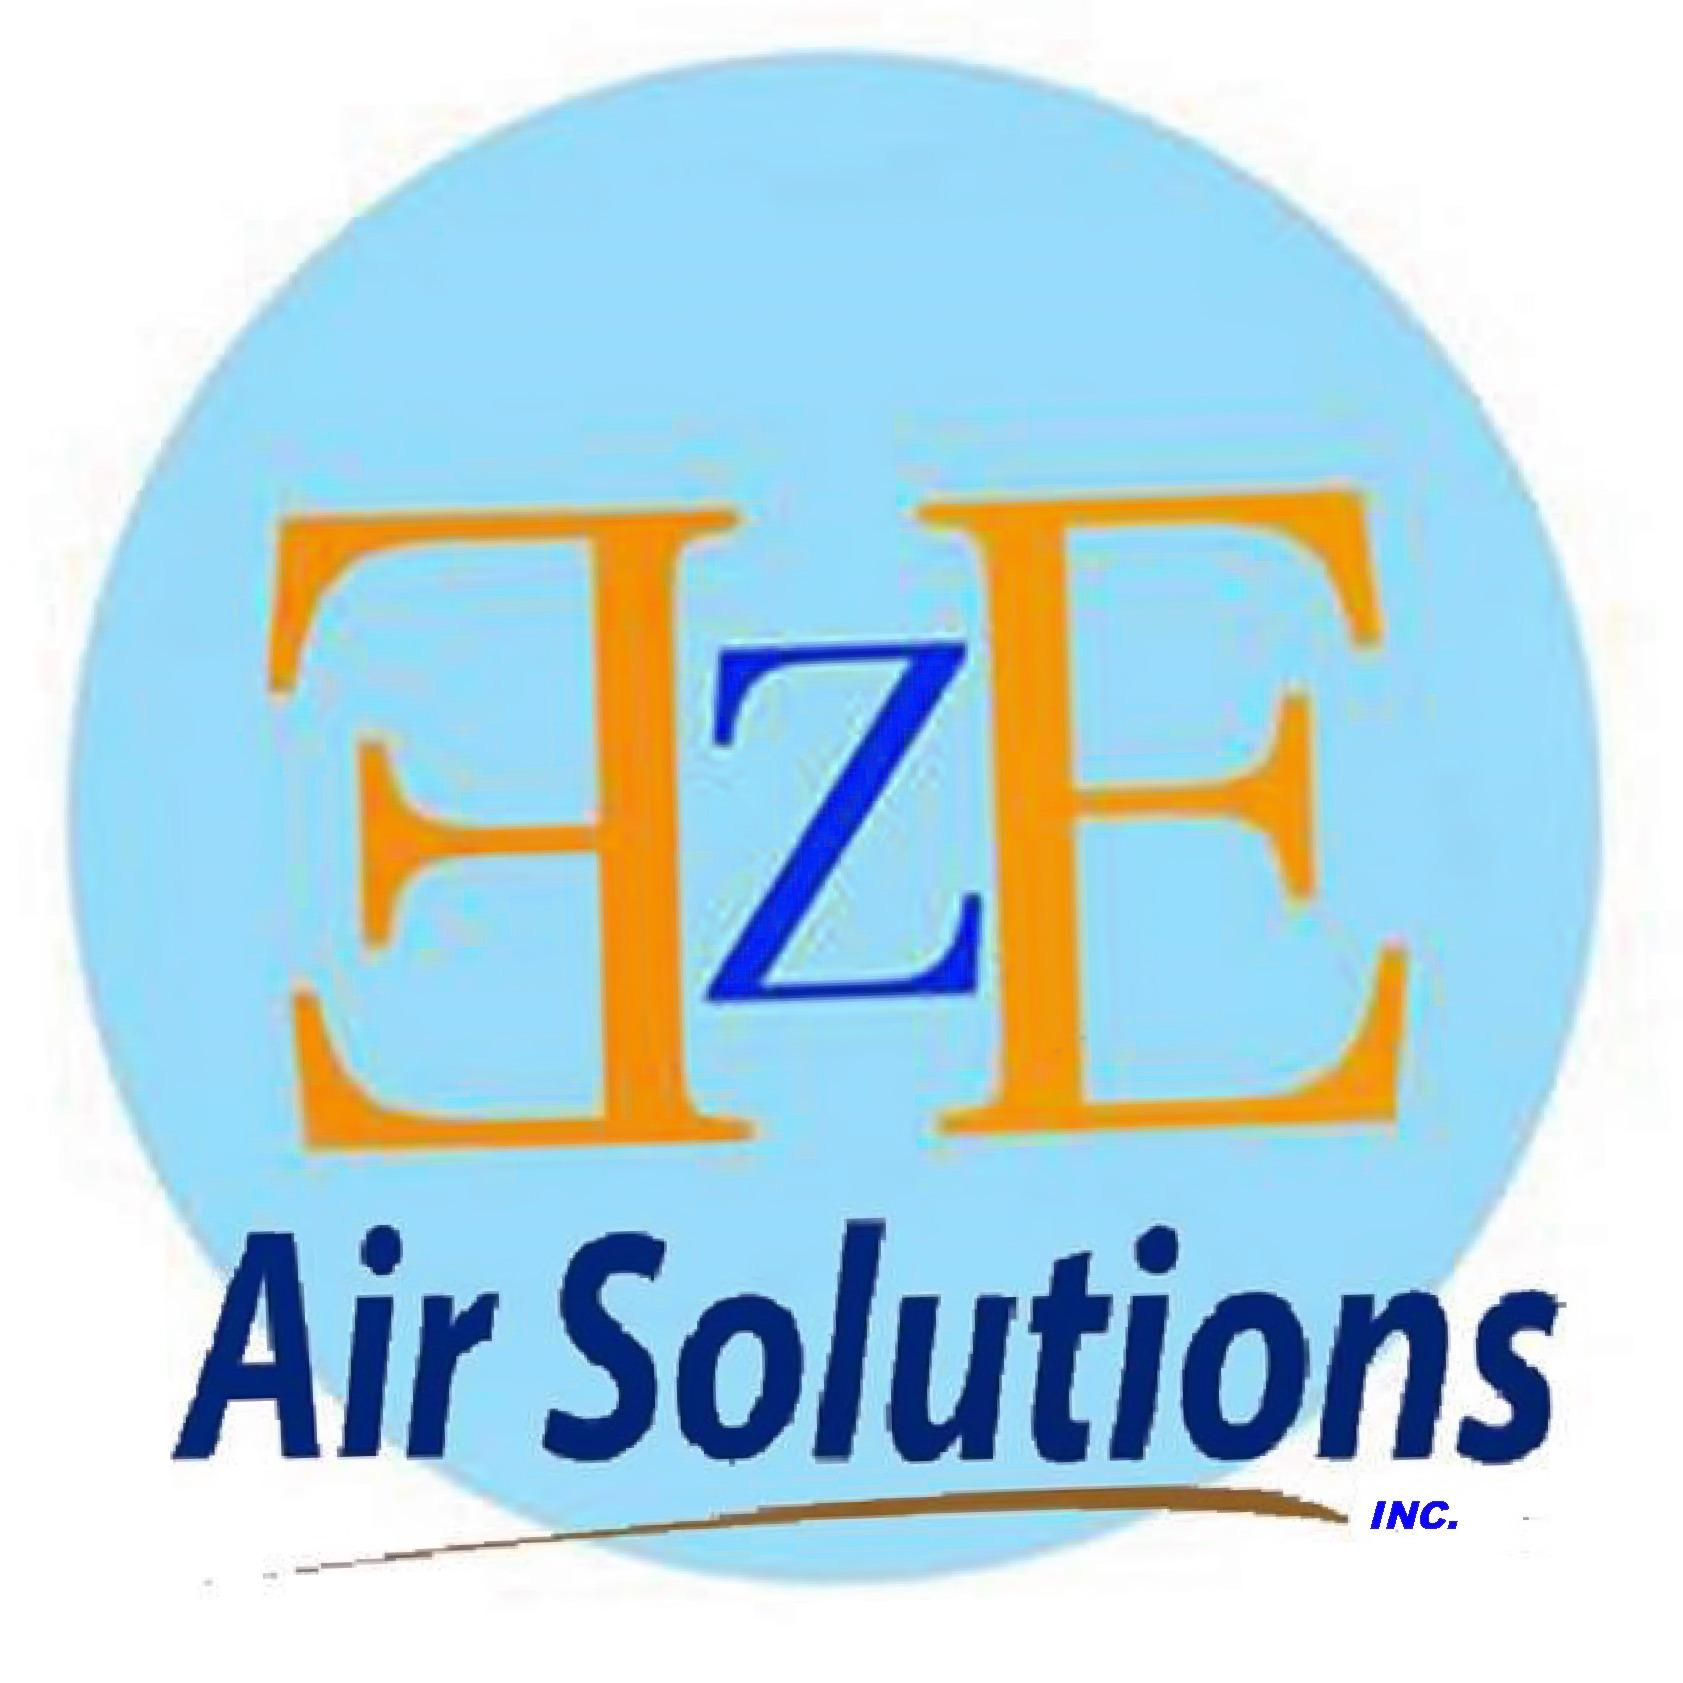 EzE Air Solutions, Inc